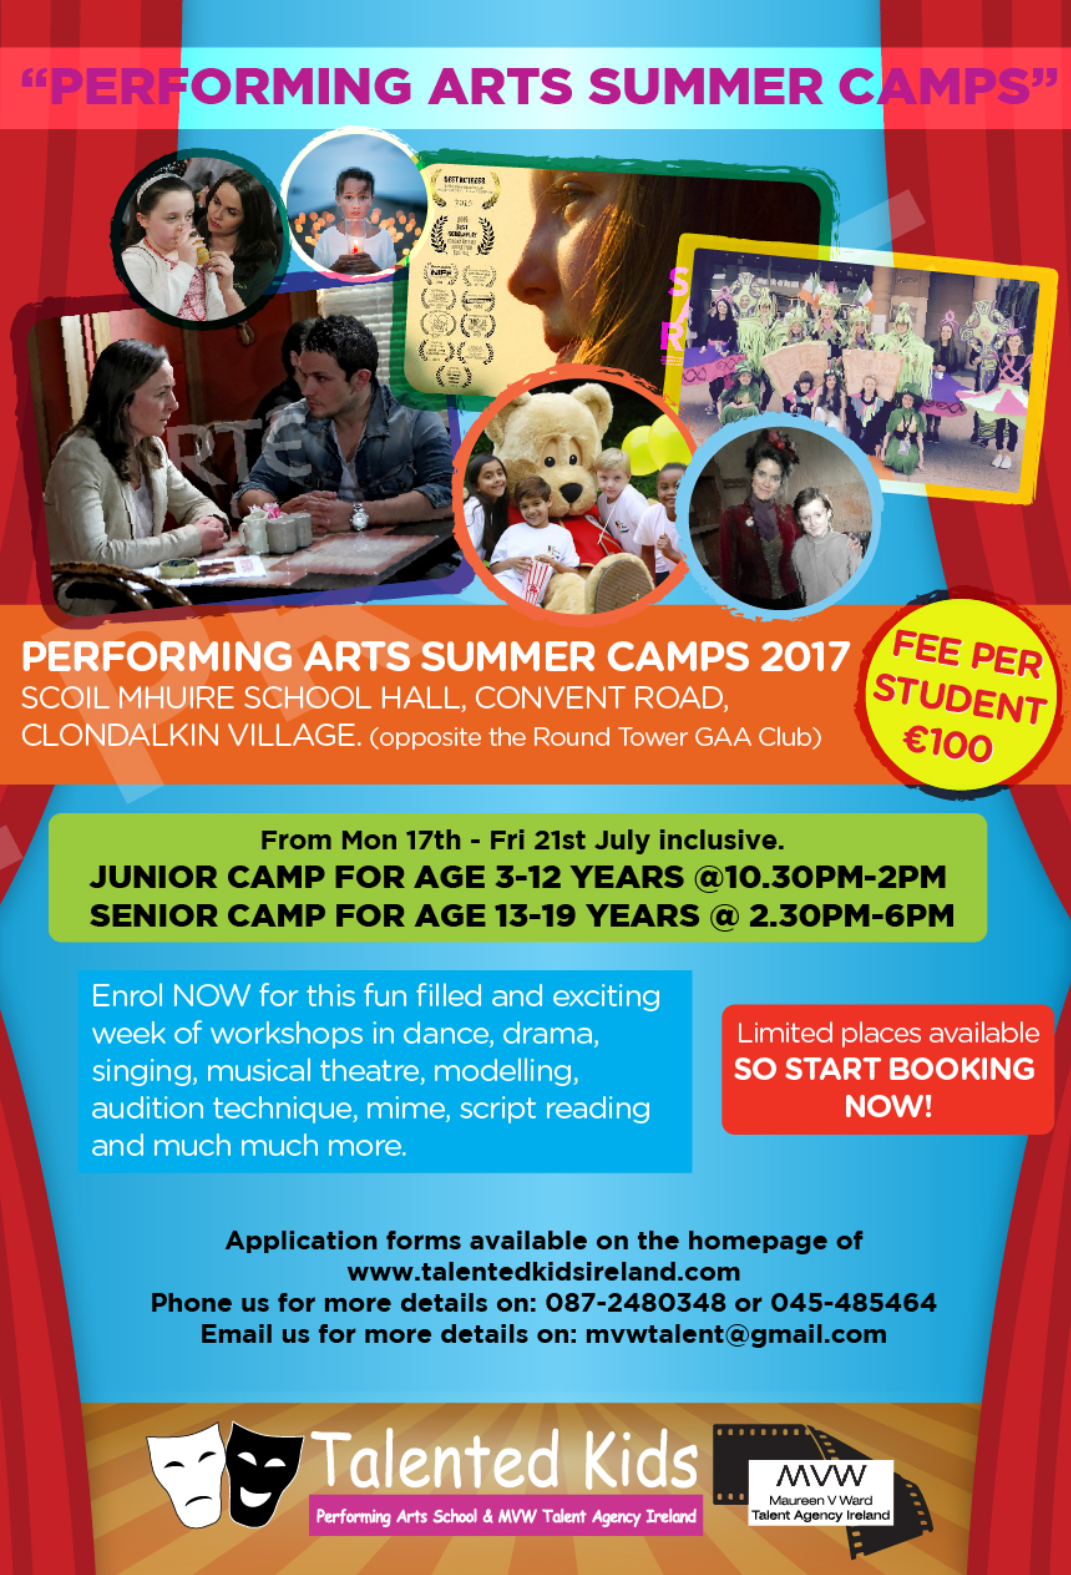 TALENTED KIDS PERFORMING ARTS SUMMER CAMP